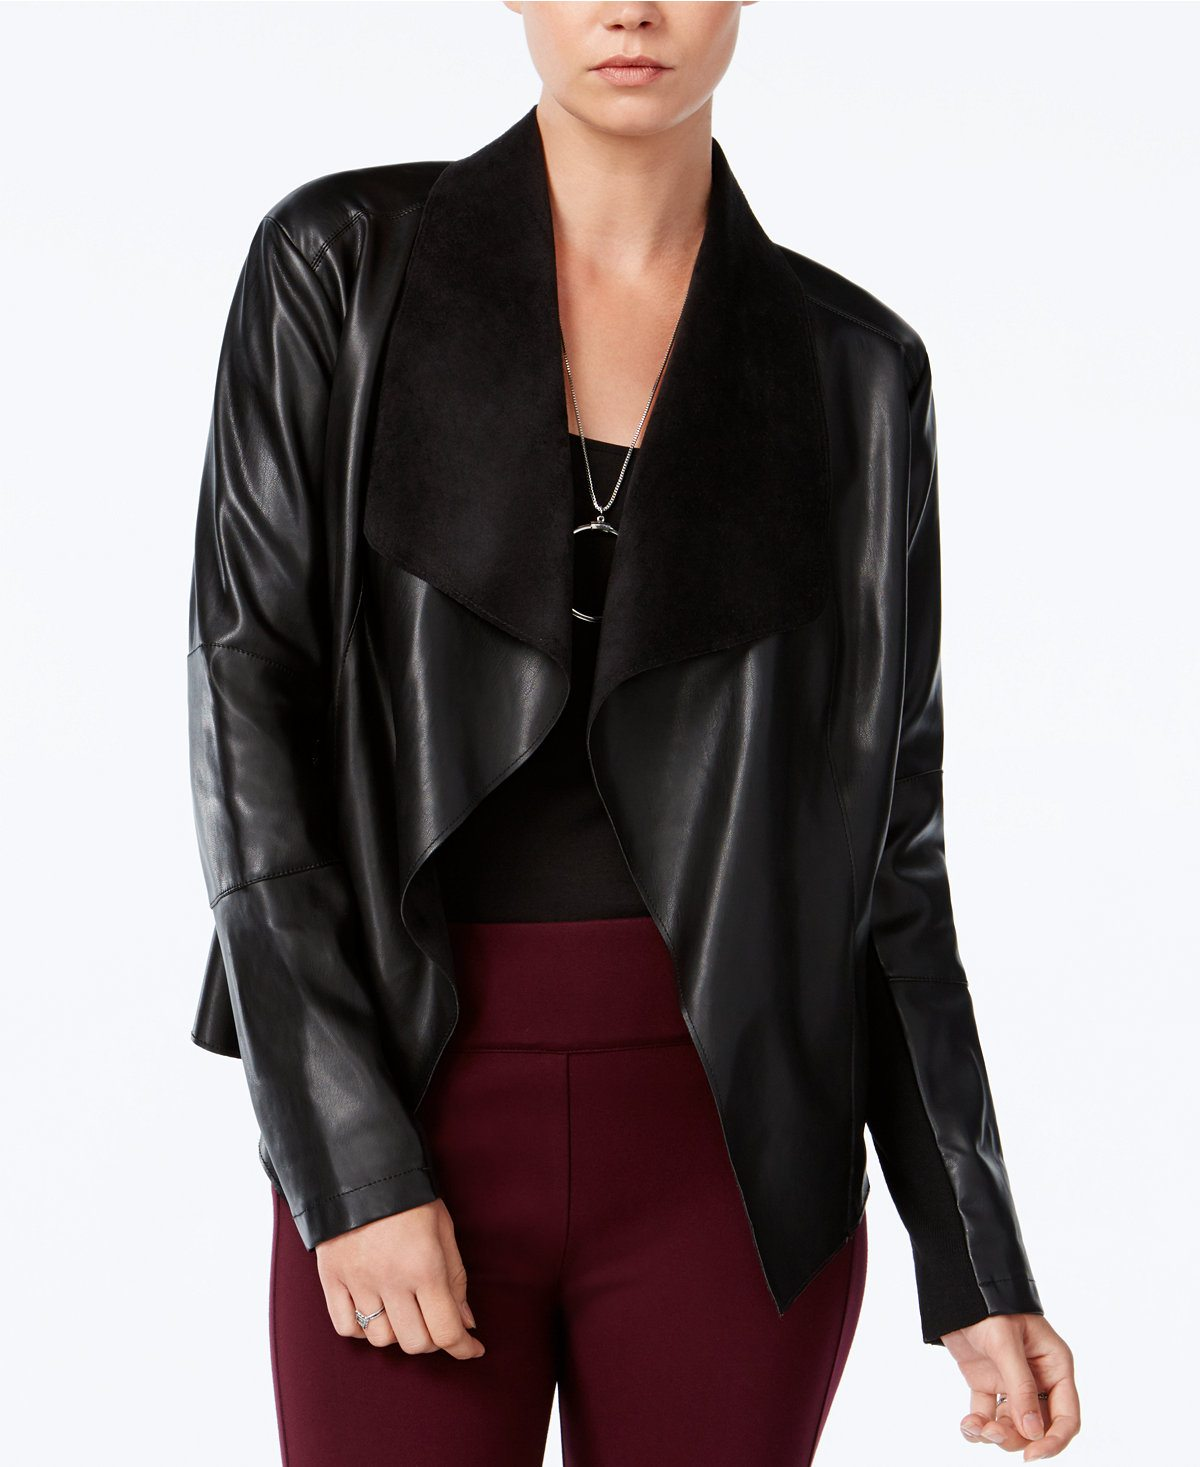 8 Jackets That Flatter Your Body at Any Age